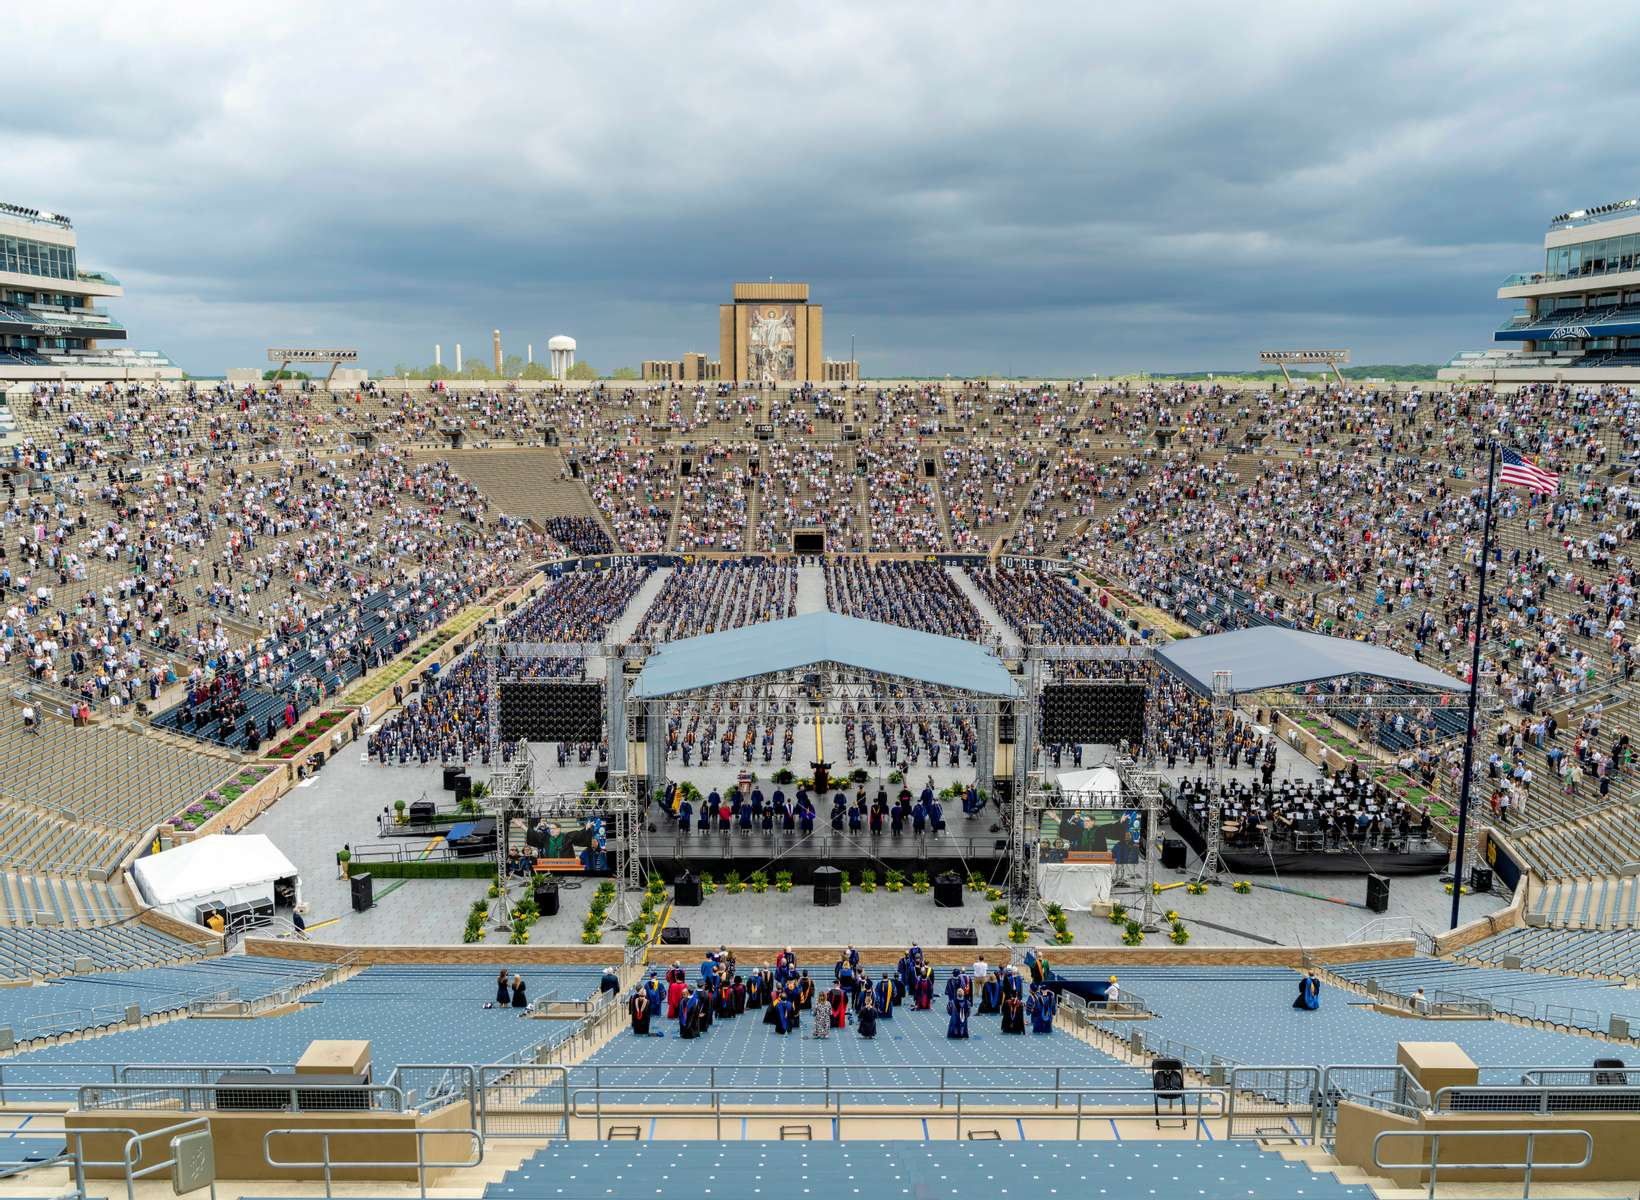 May 23, 2021; Rev. James K. Foster, C.S.C., sings America the Beautiful at the opening of the 176th Commencement Ceremony in Notre Dame Stadium. (Photo by Barbara Johnston/University of Notre Dame)